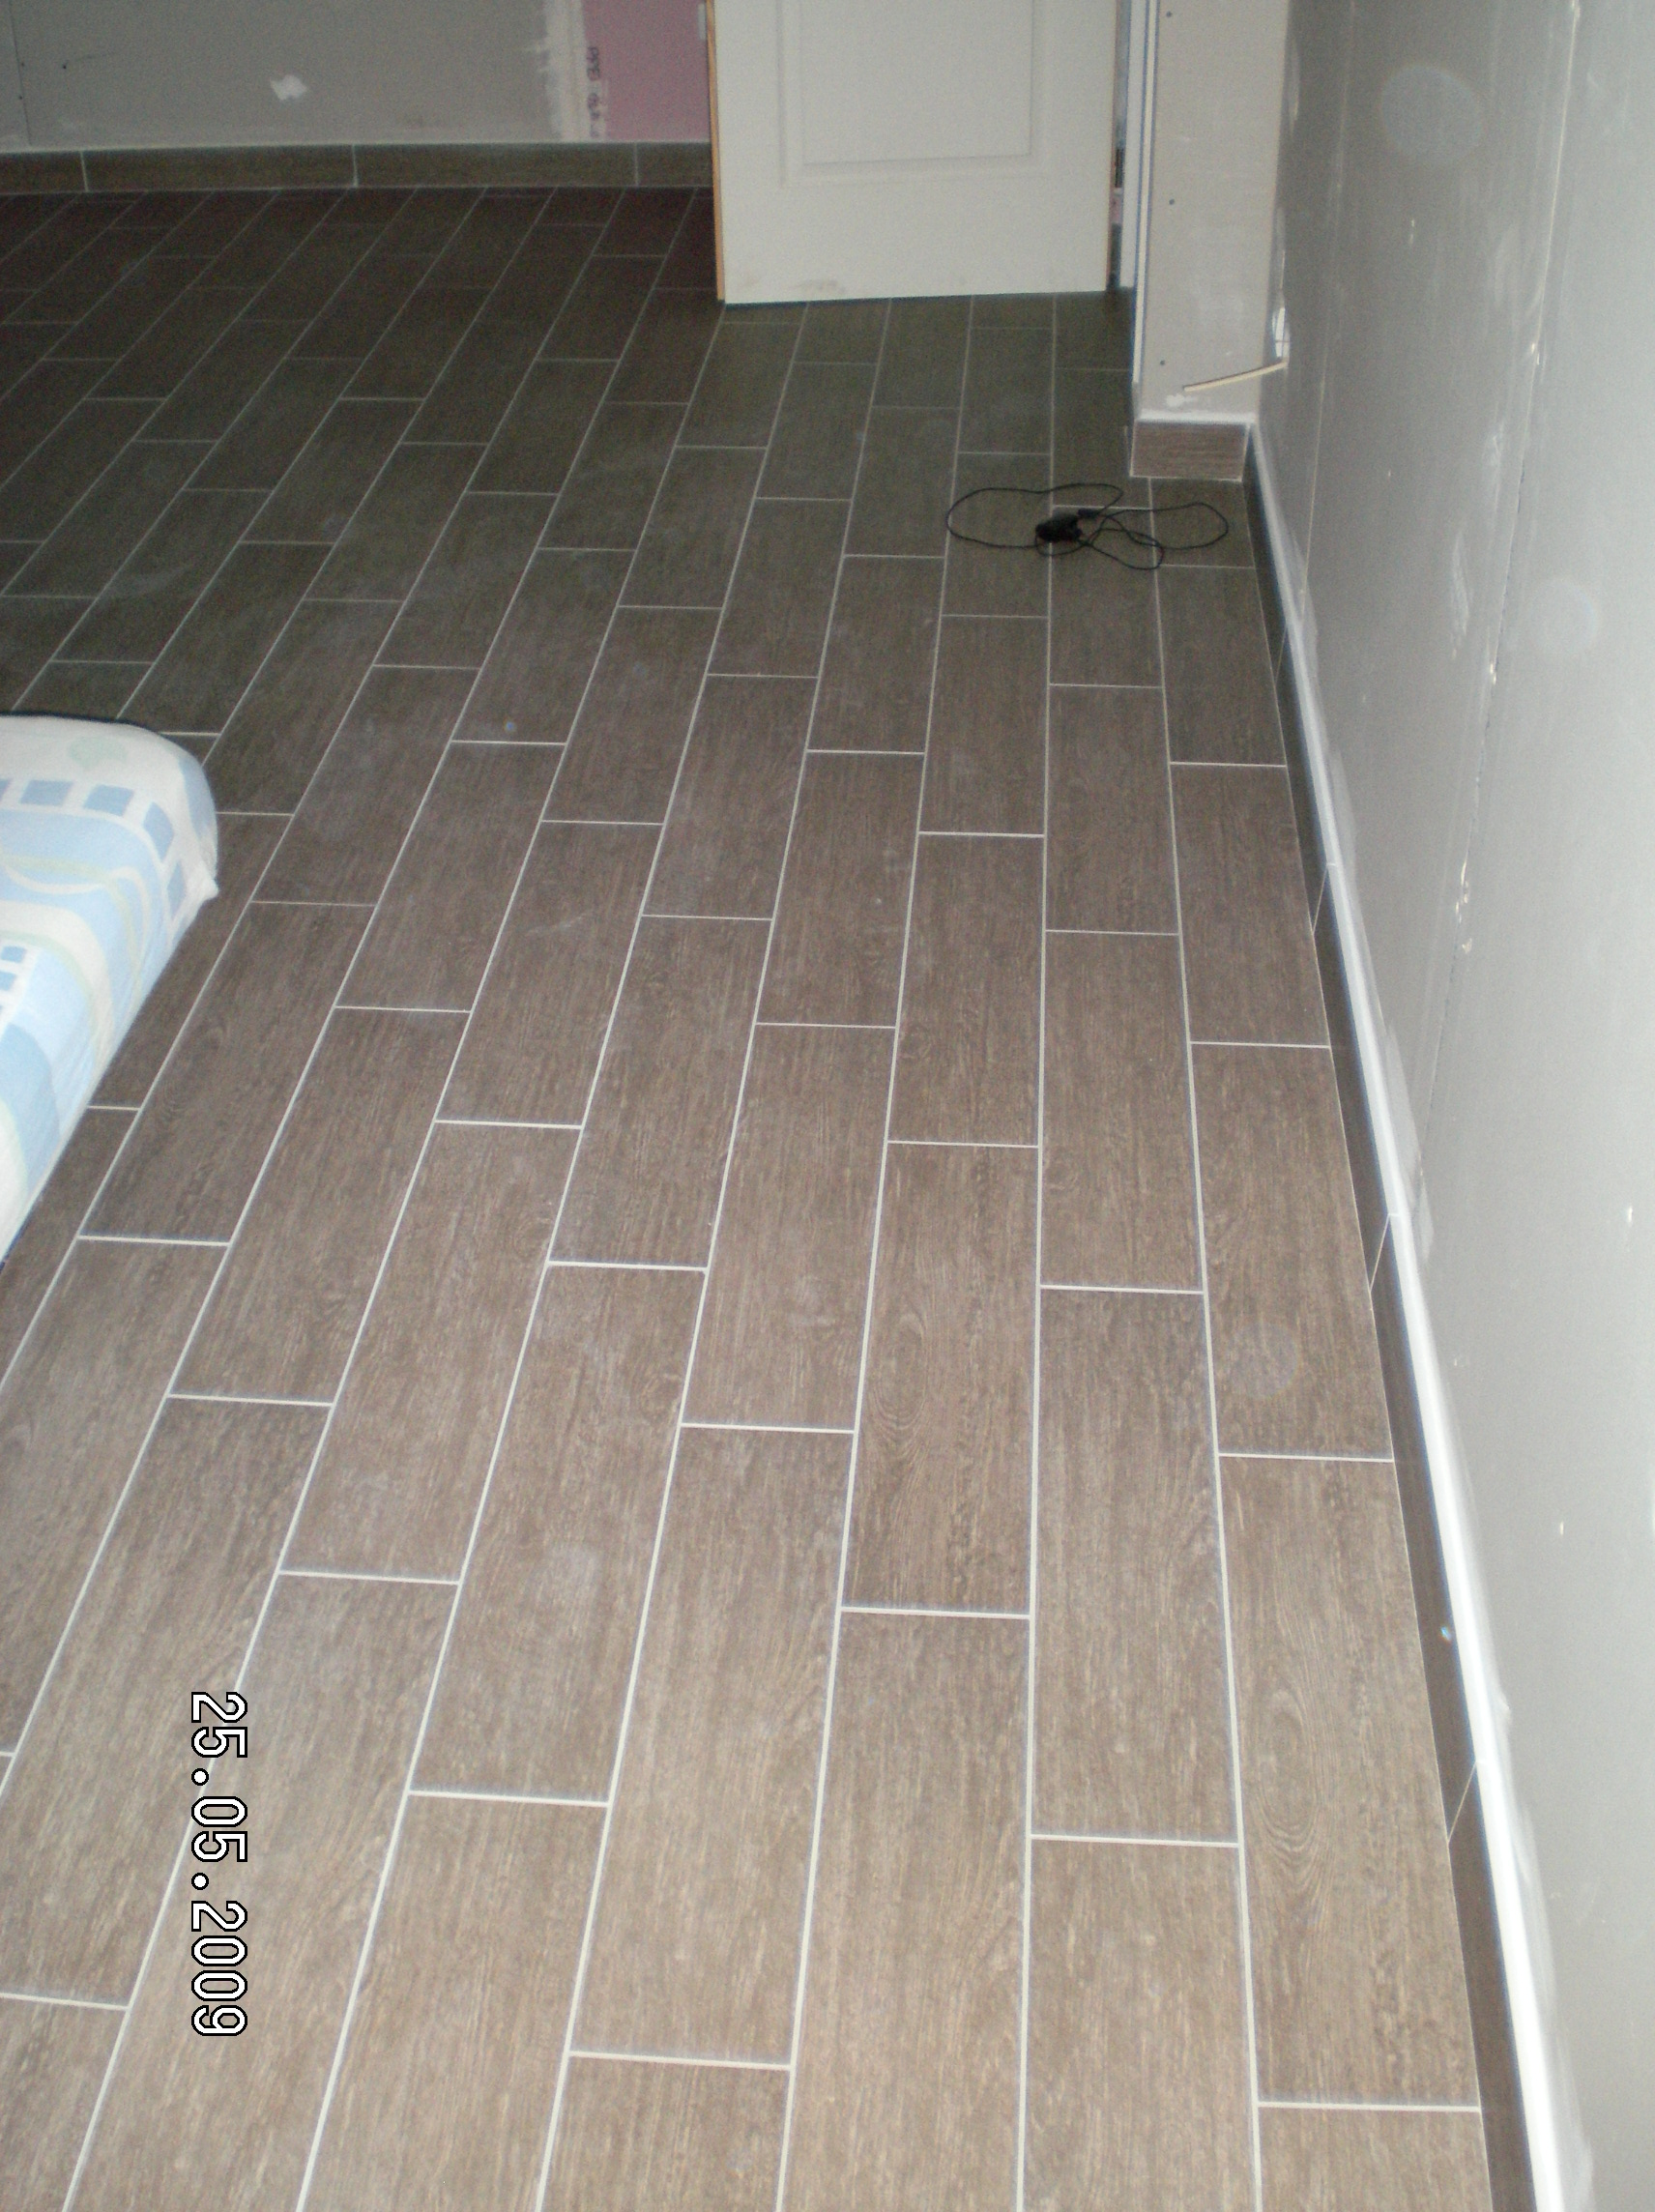 Carrelage aspect parquet 40 messages page 2 - Carrelage aspect parquet ...